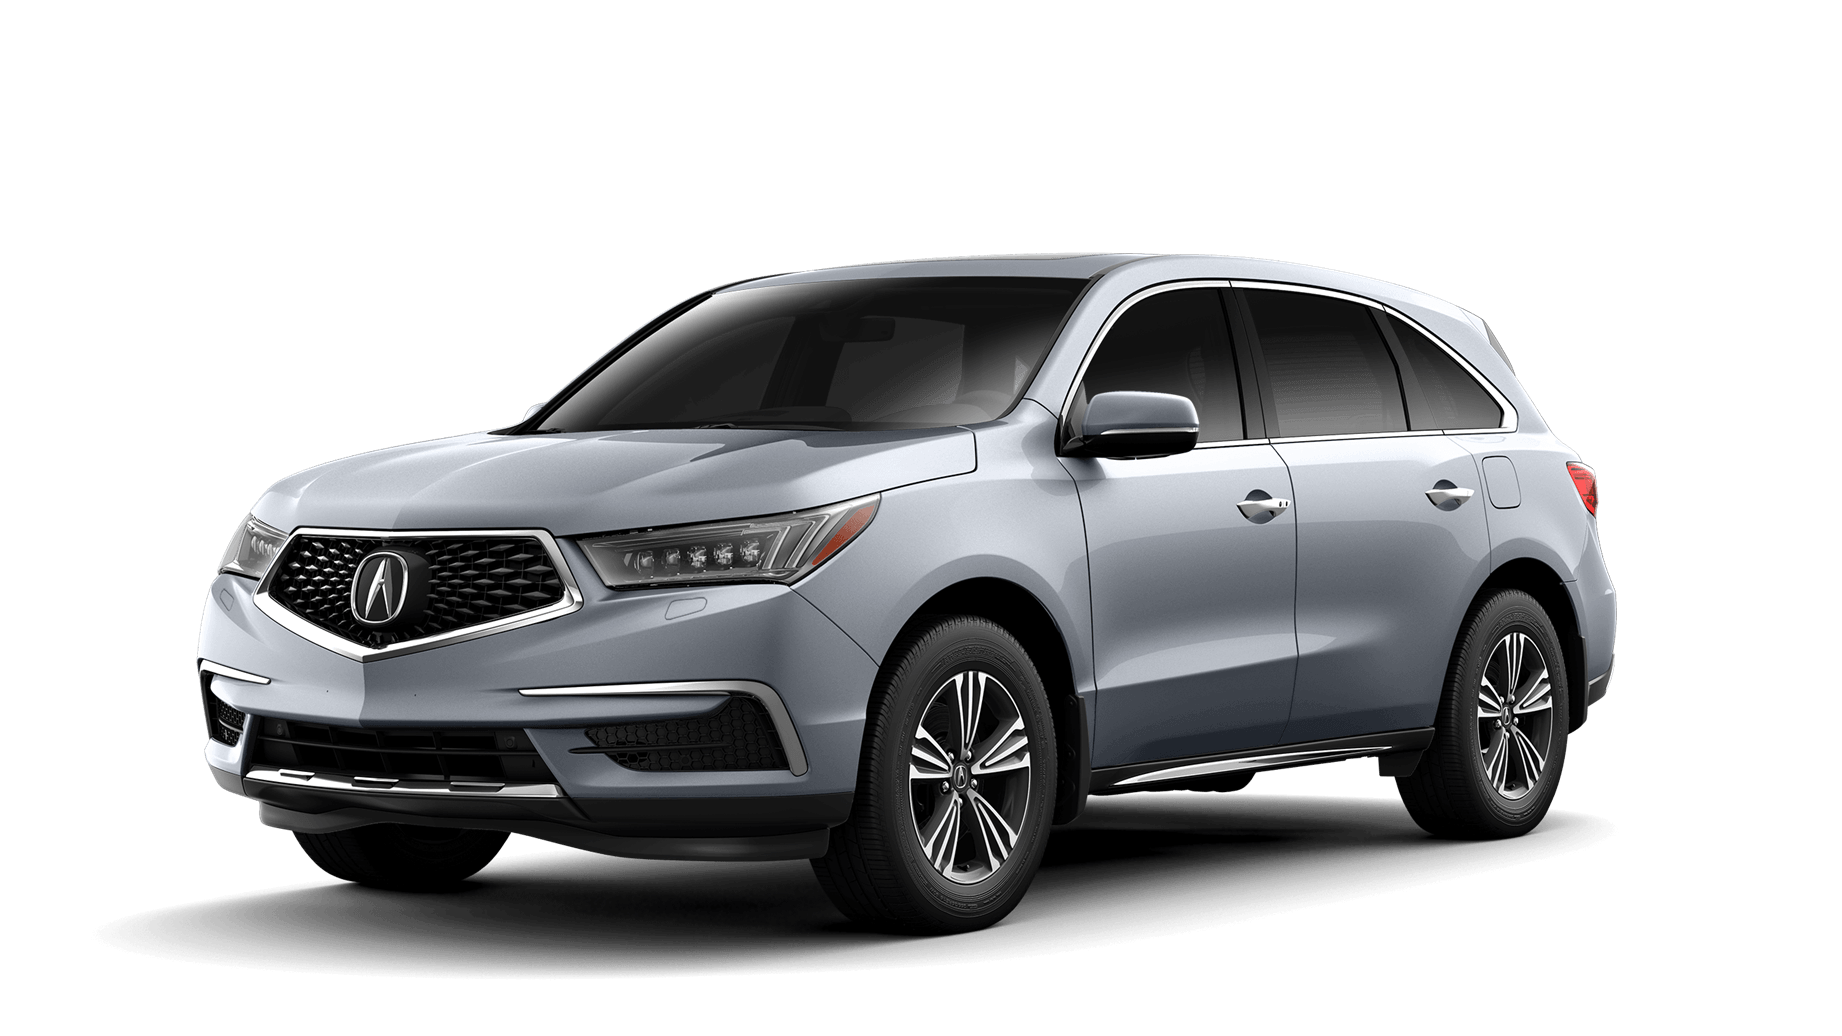 2017 Acura MDX at your local Acura Dealership located near New Westminster